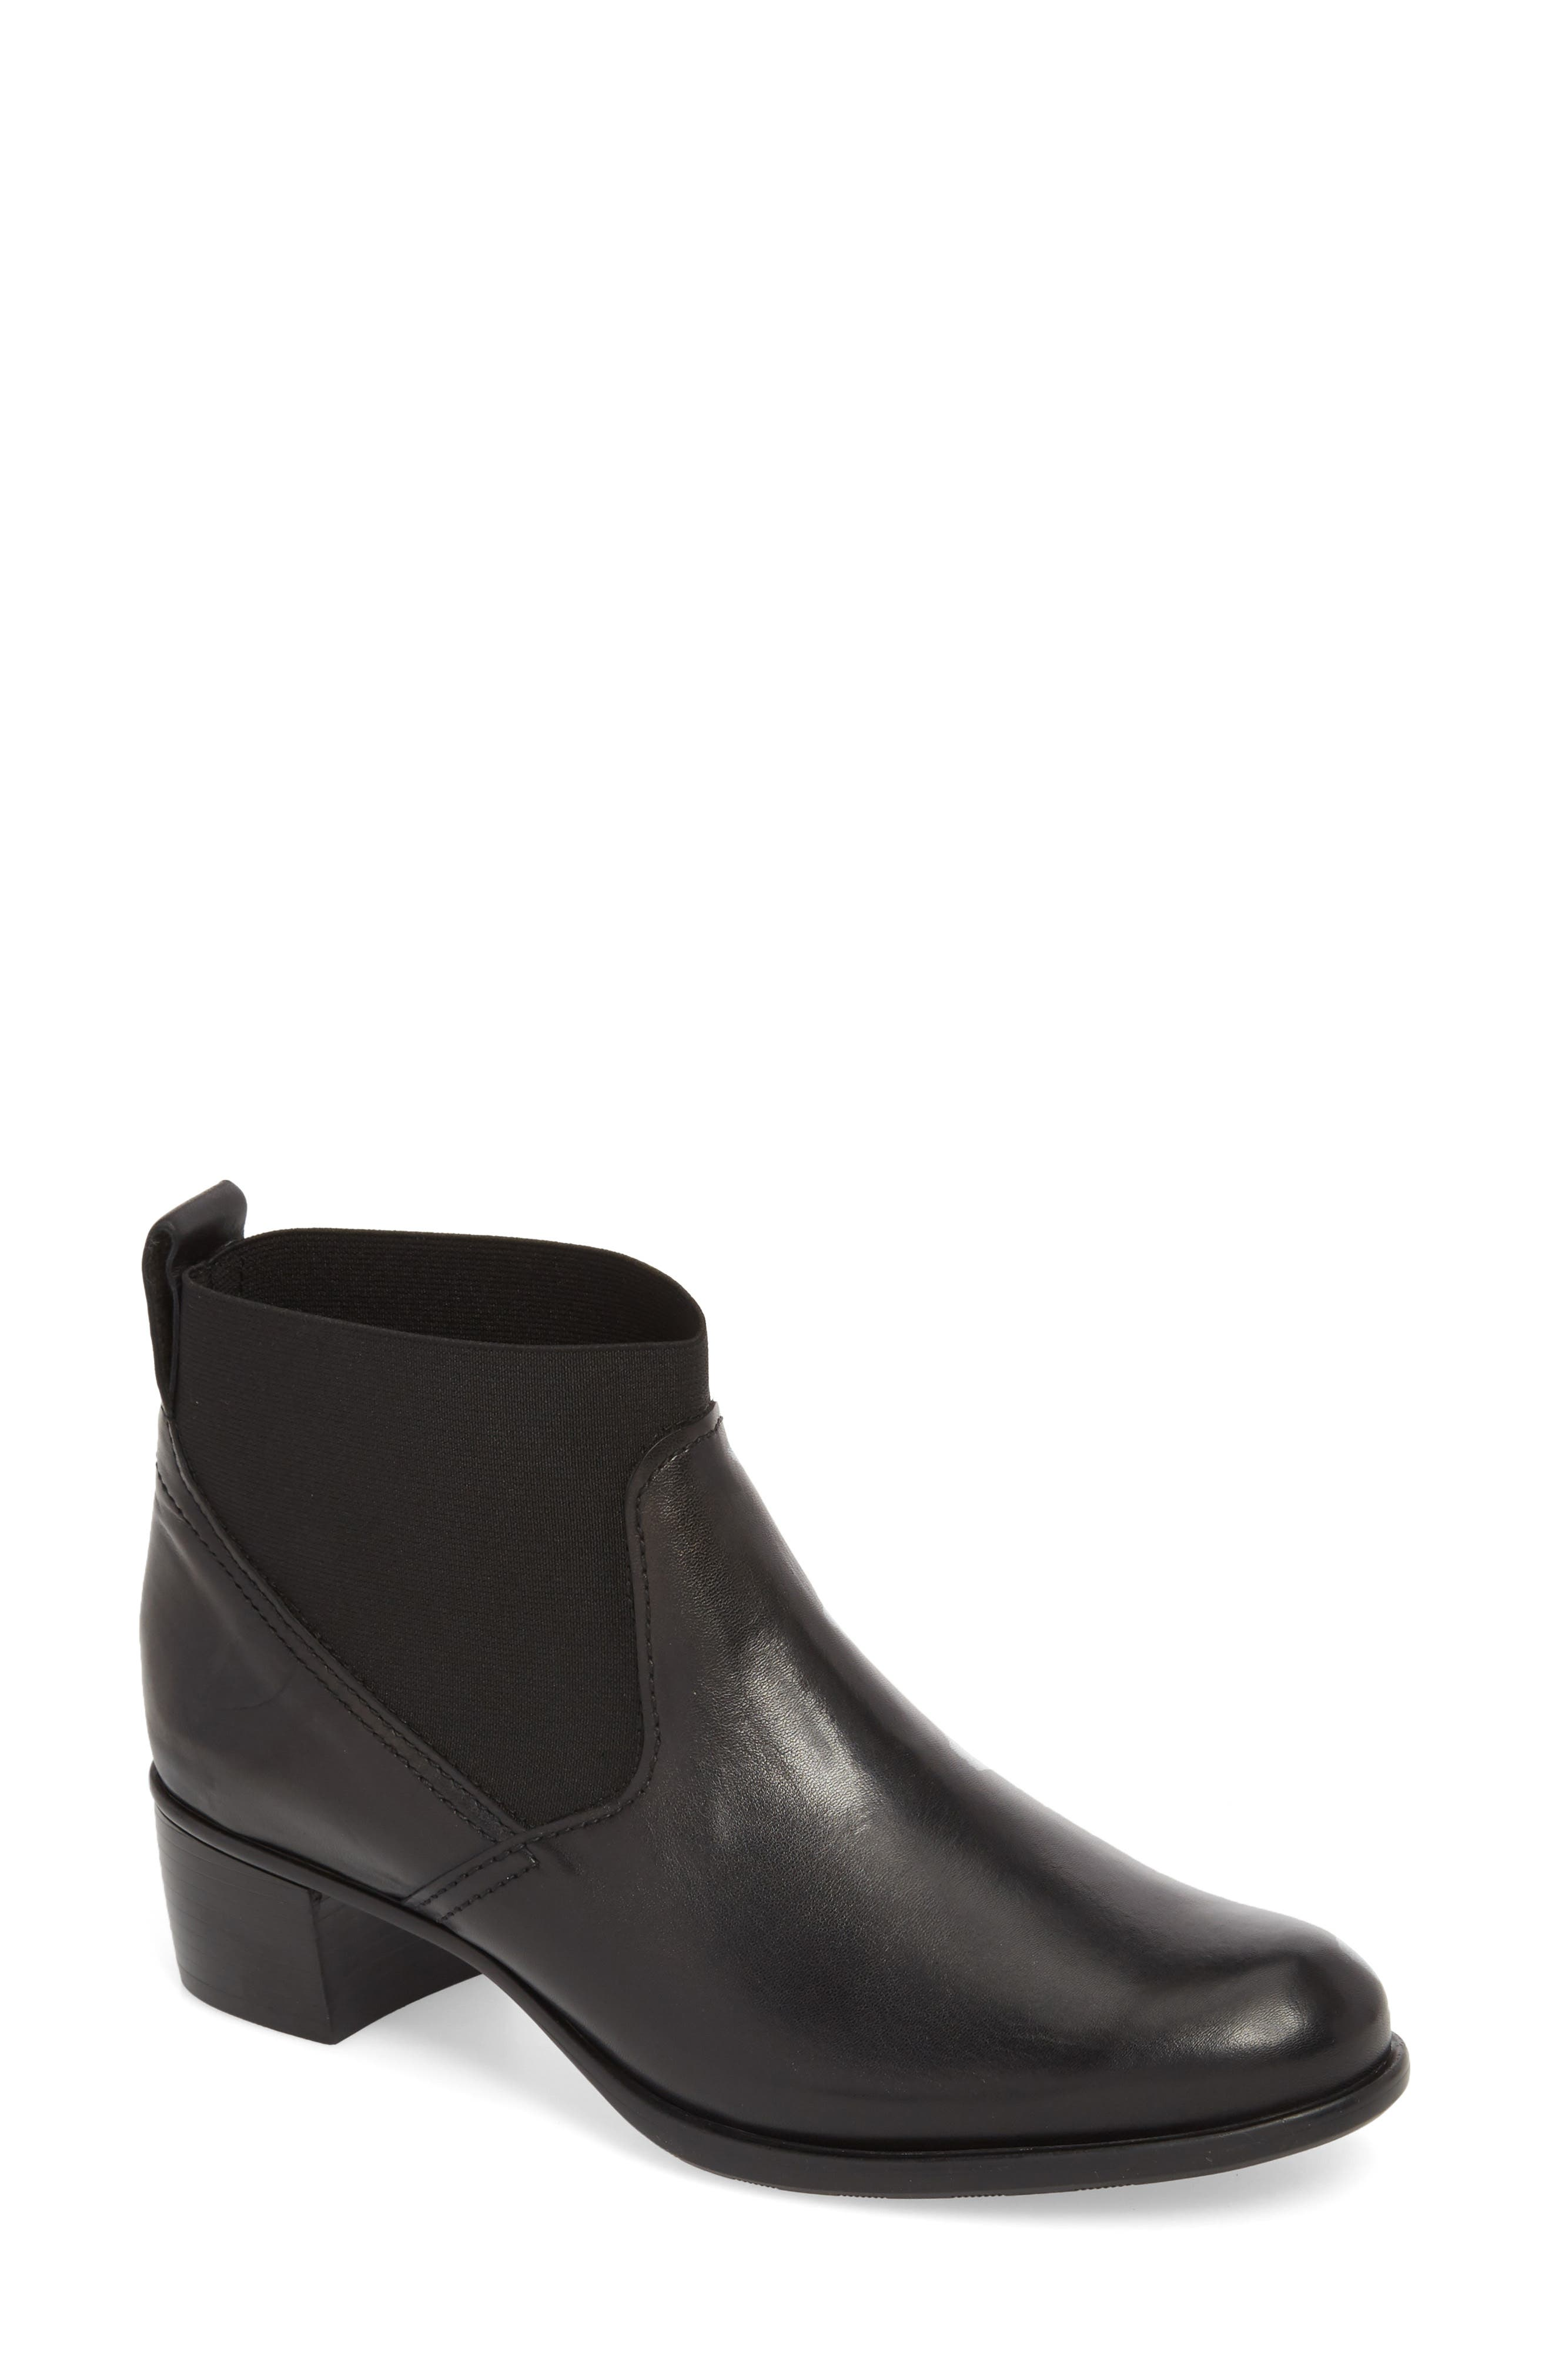 MUNRO Ana Bootie in Black Leather